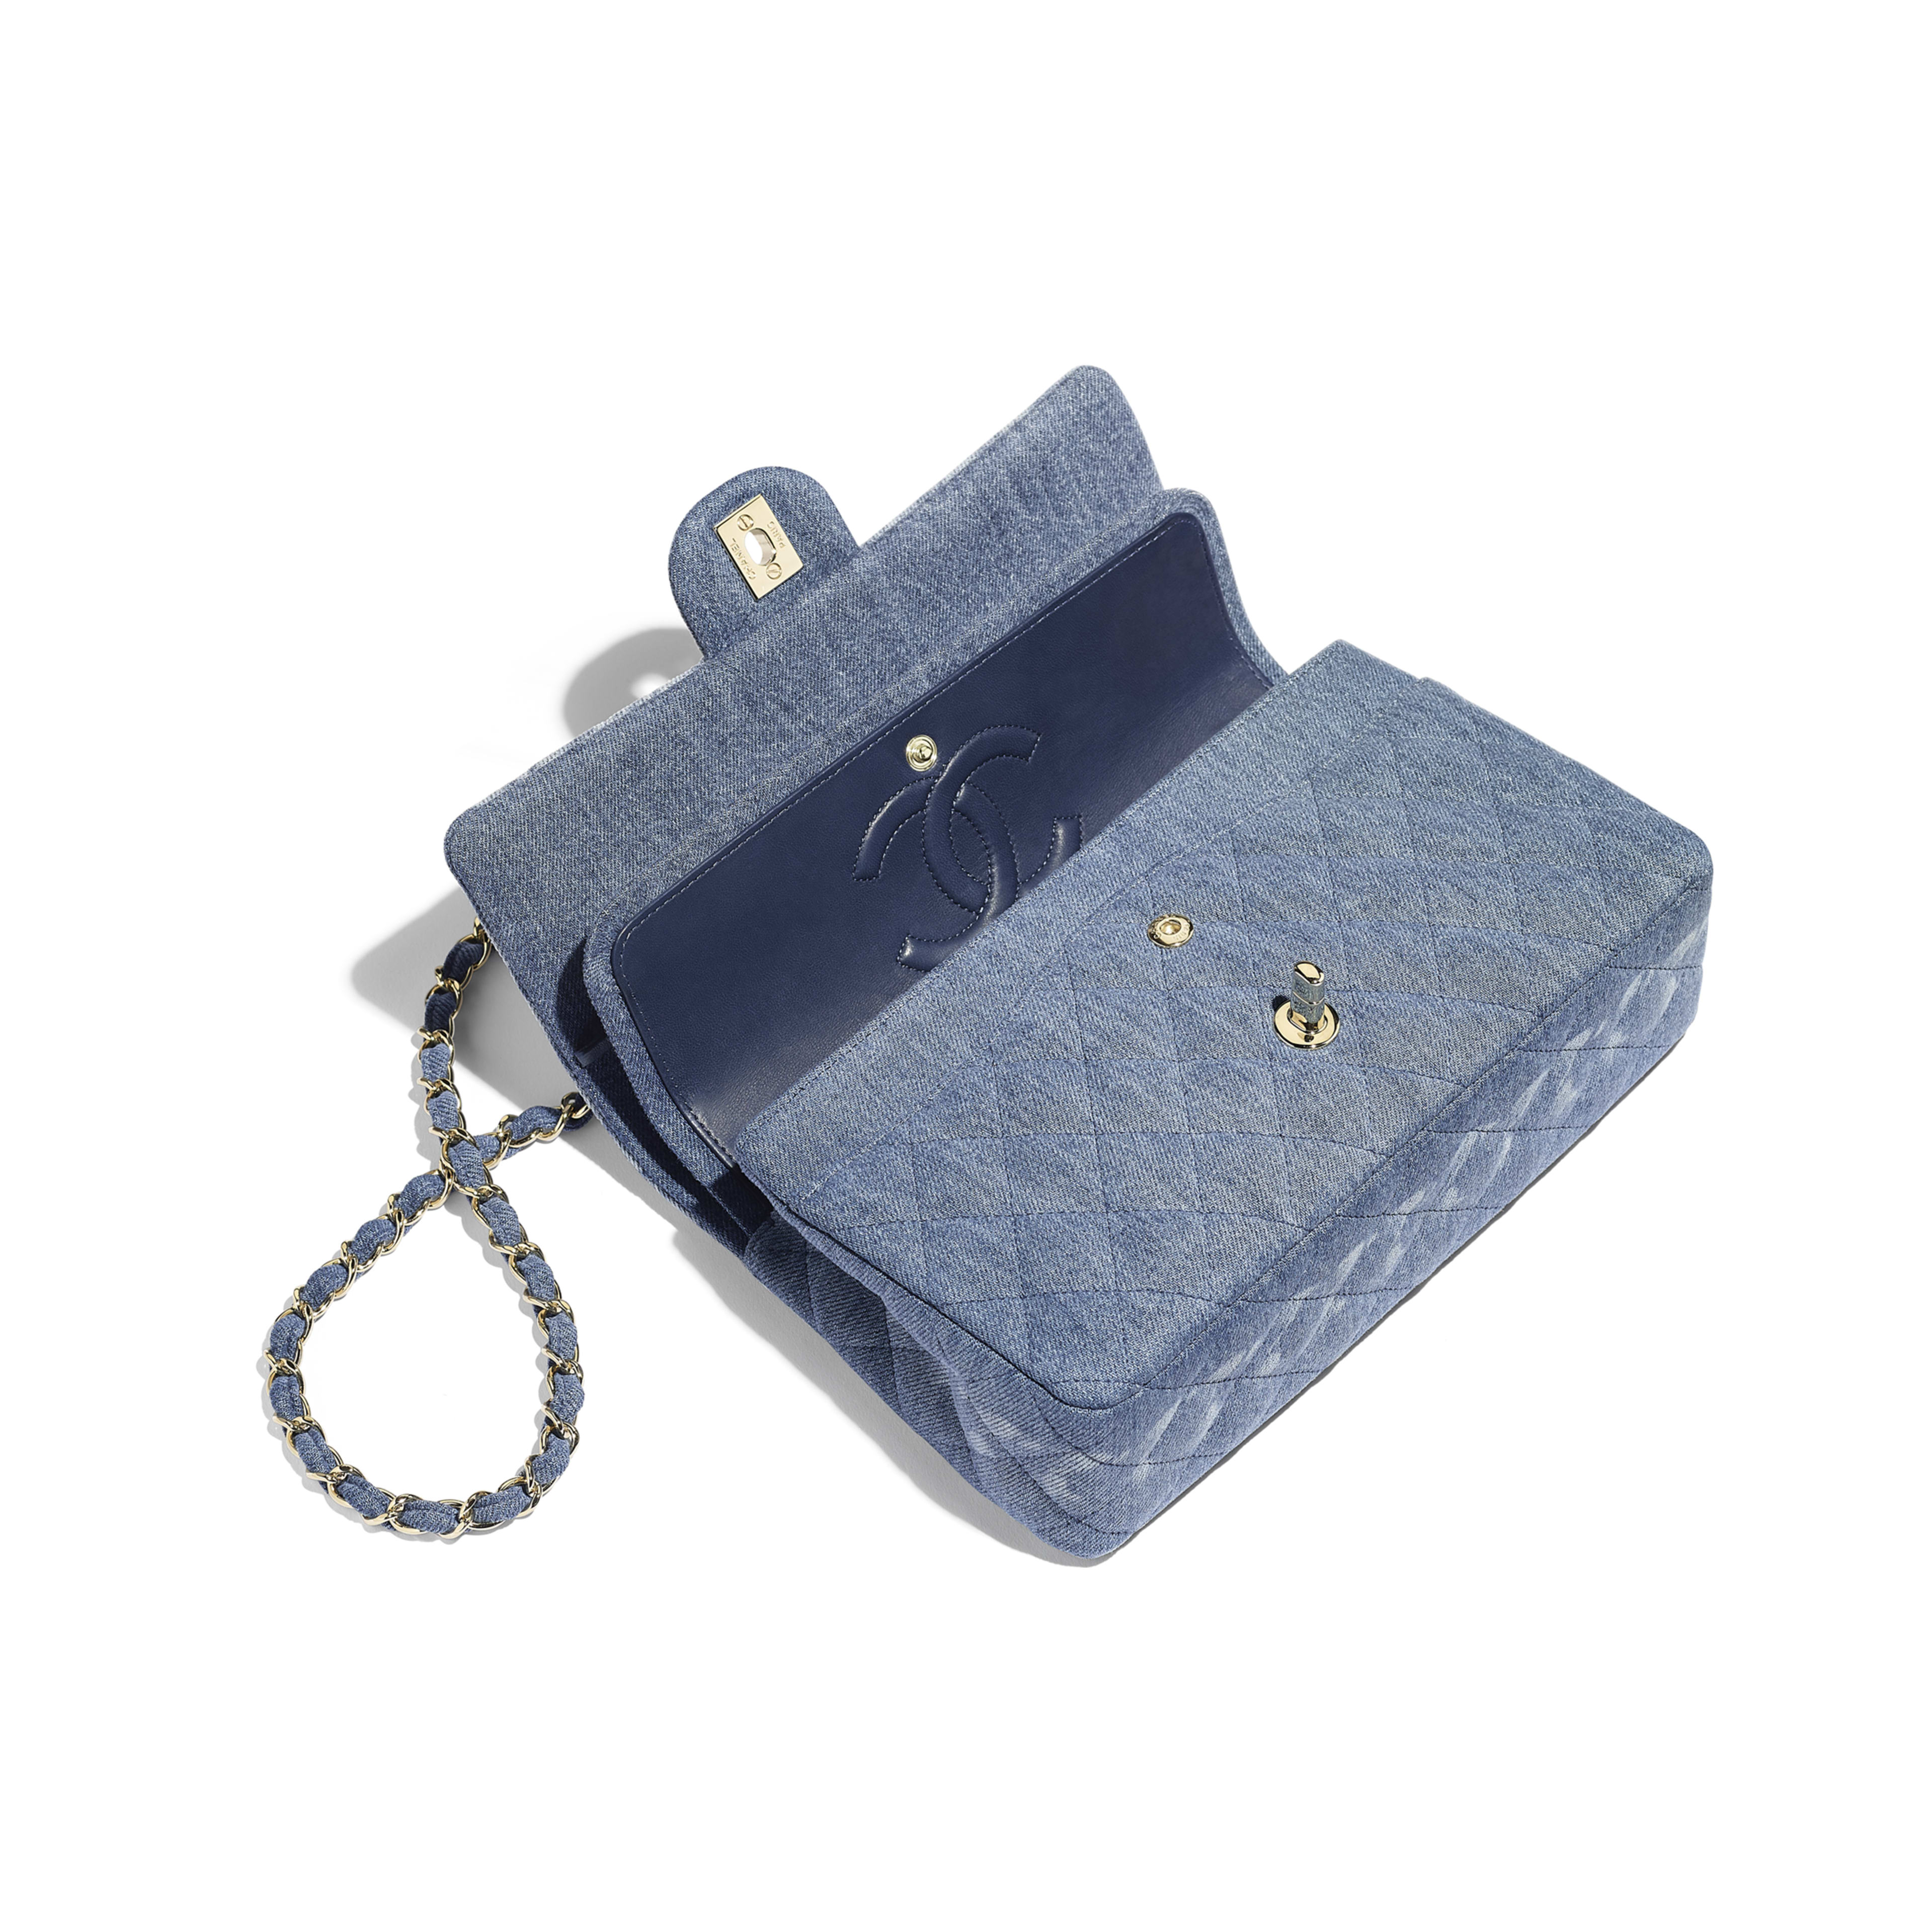 Classic Handbag - Blue - Denim & Gold-Tone Metal - Other view - see full sized version